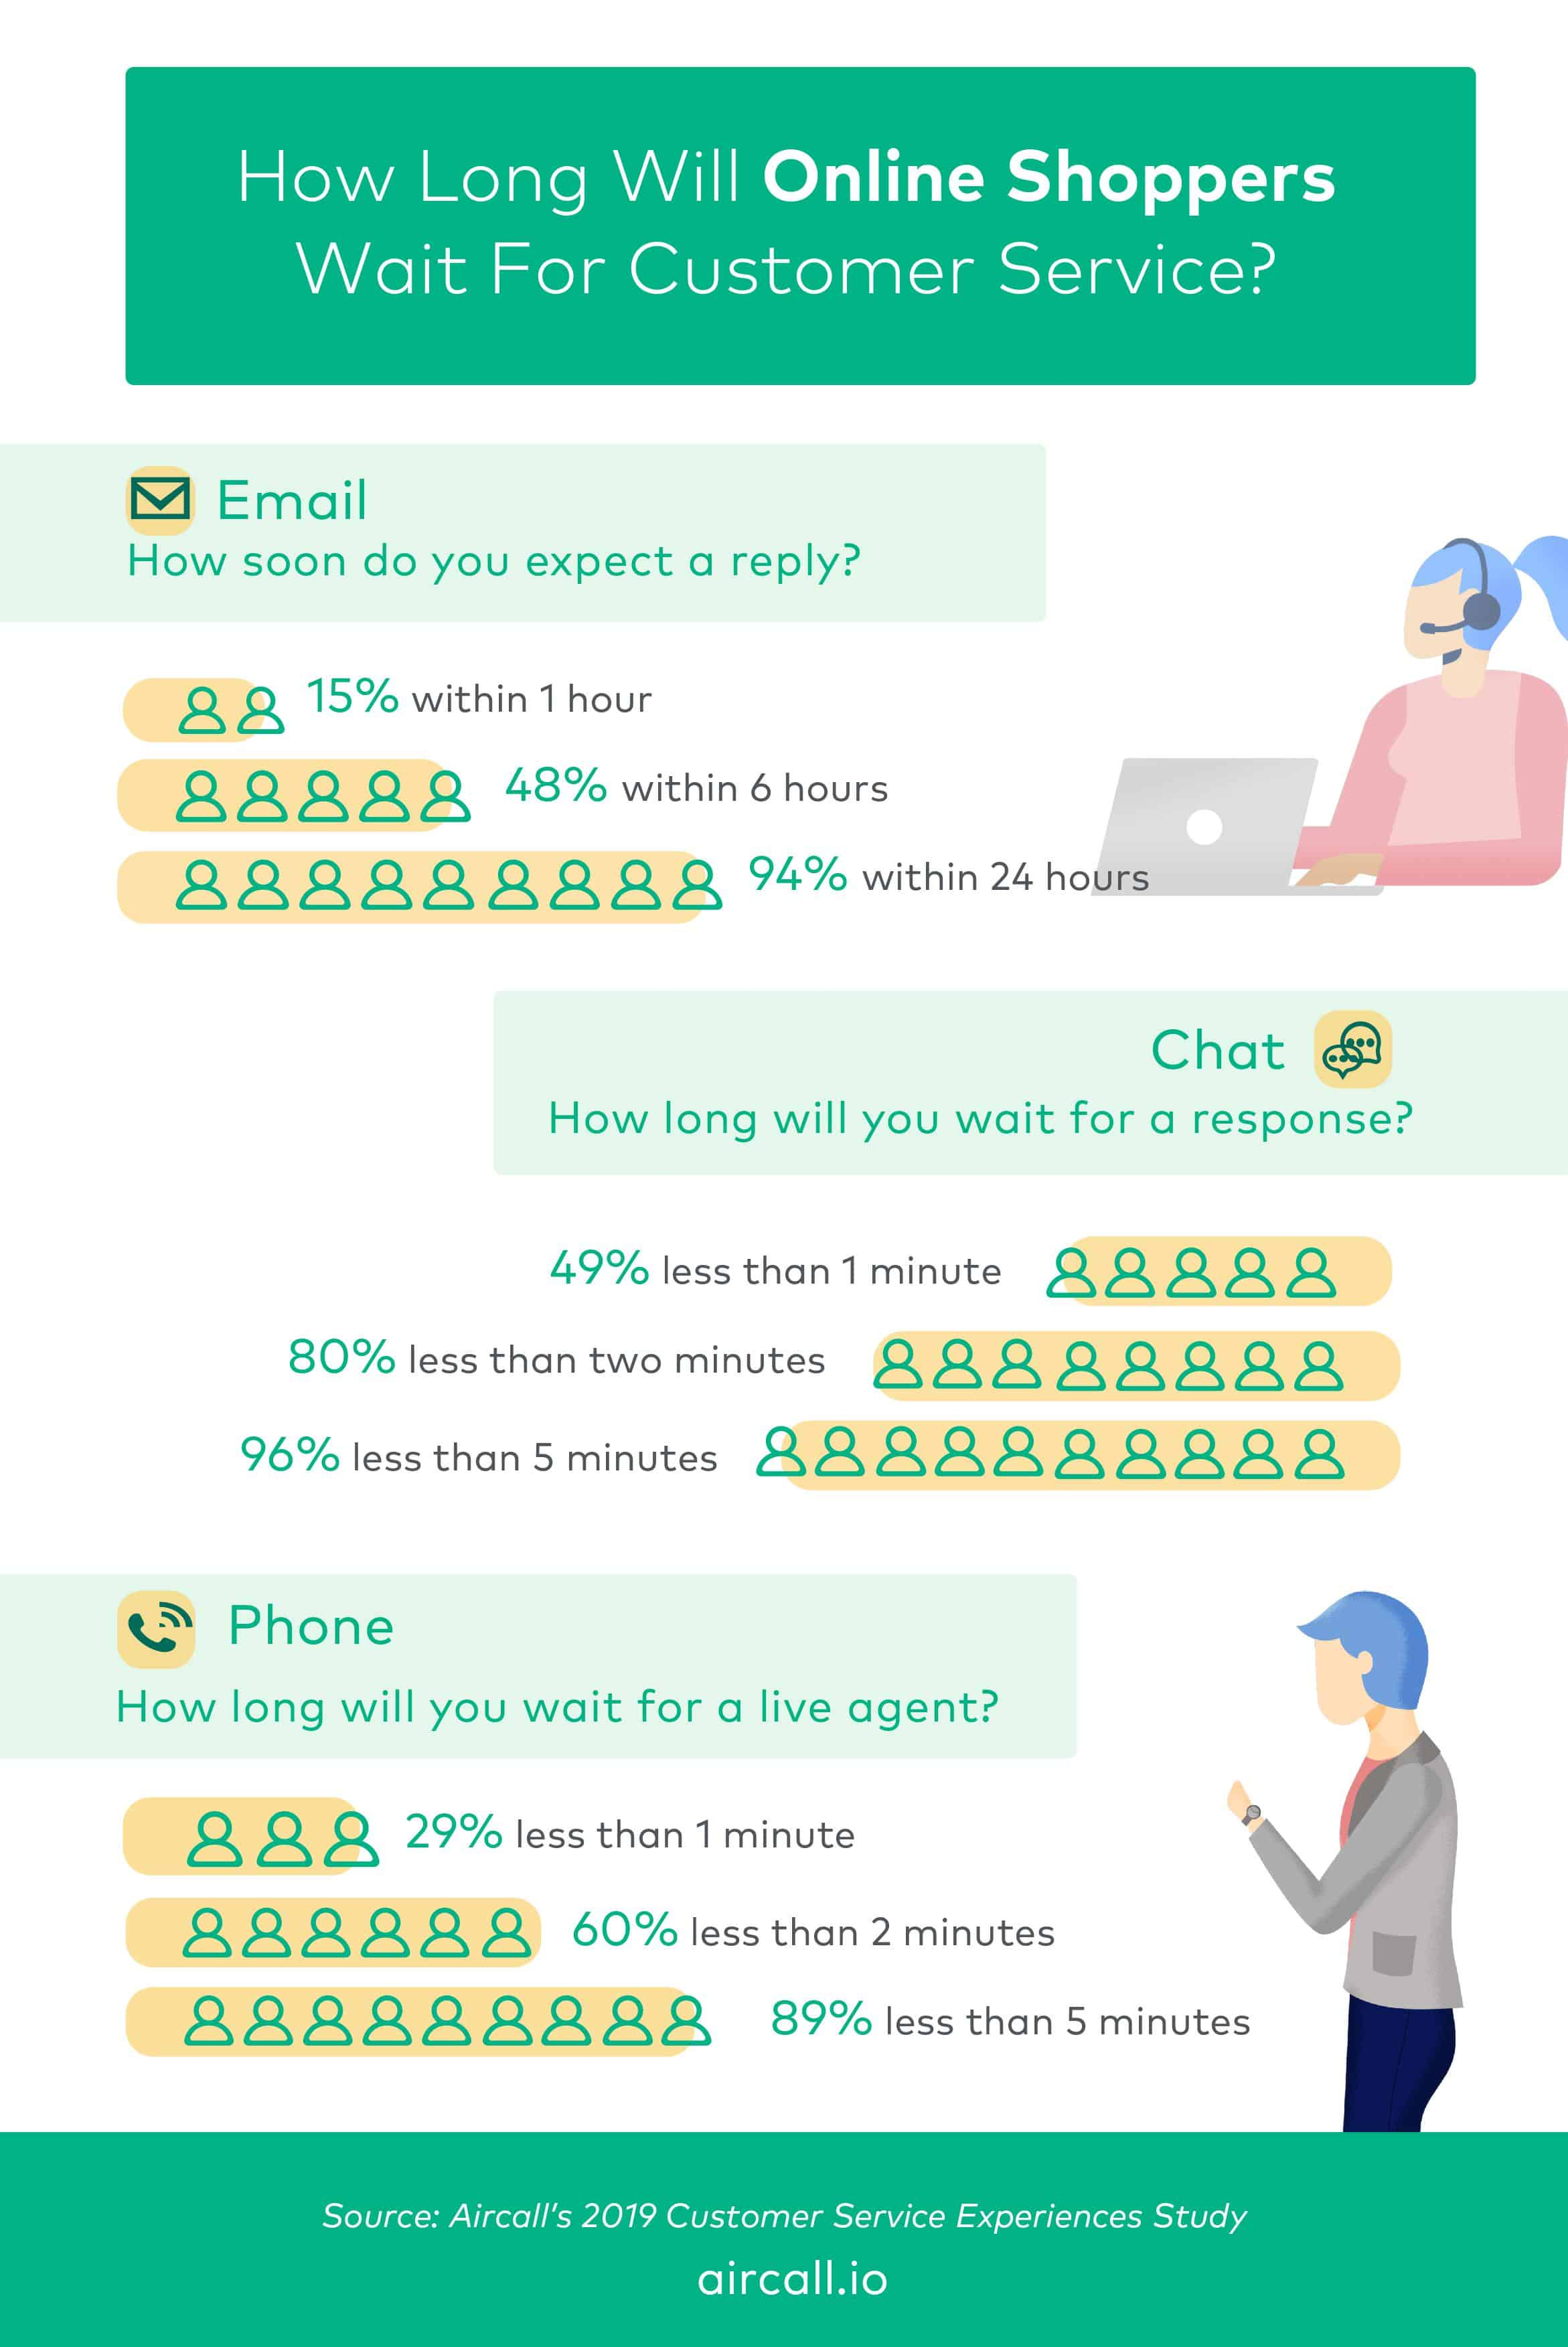 Customer Service Wait Time Expectations - Aircall Infographic